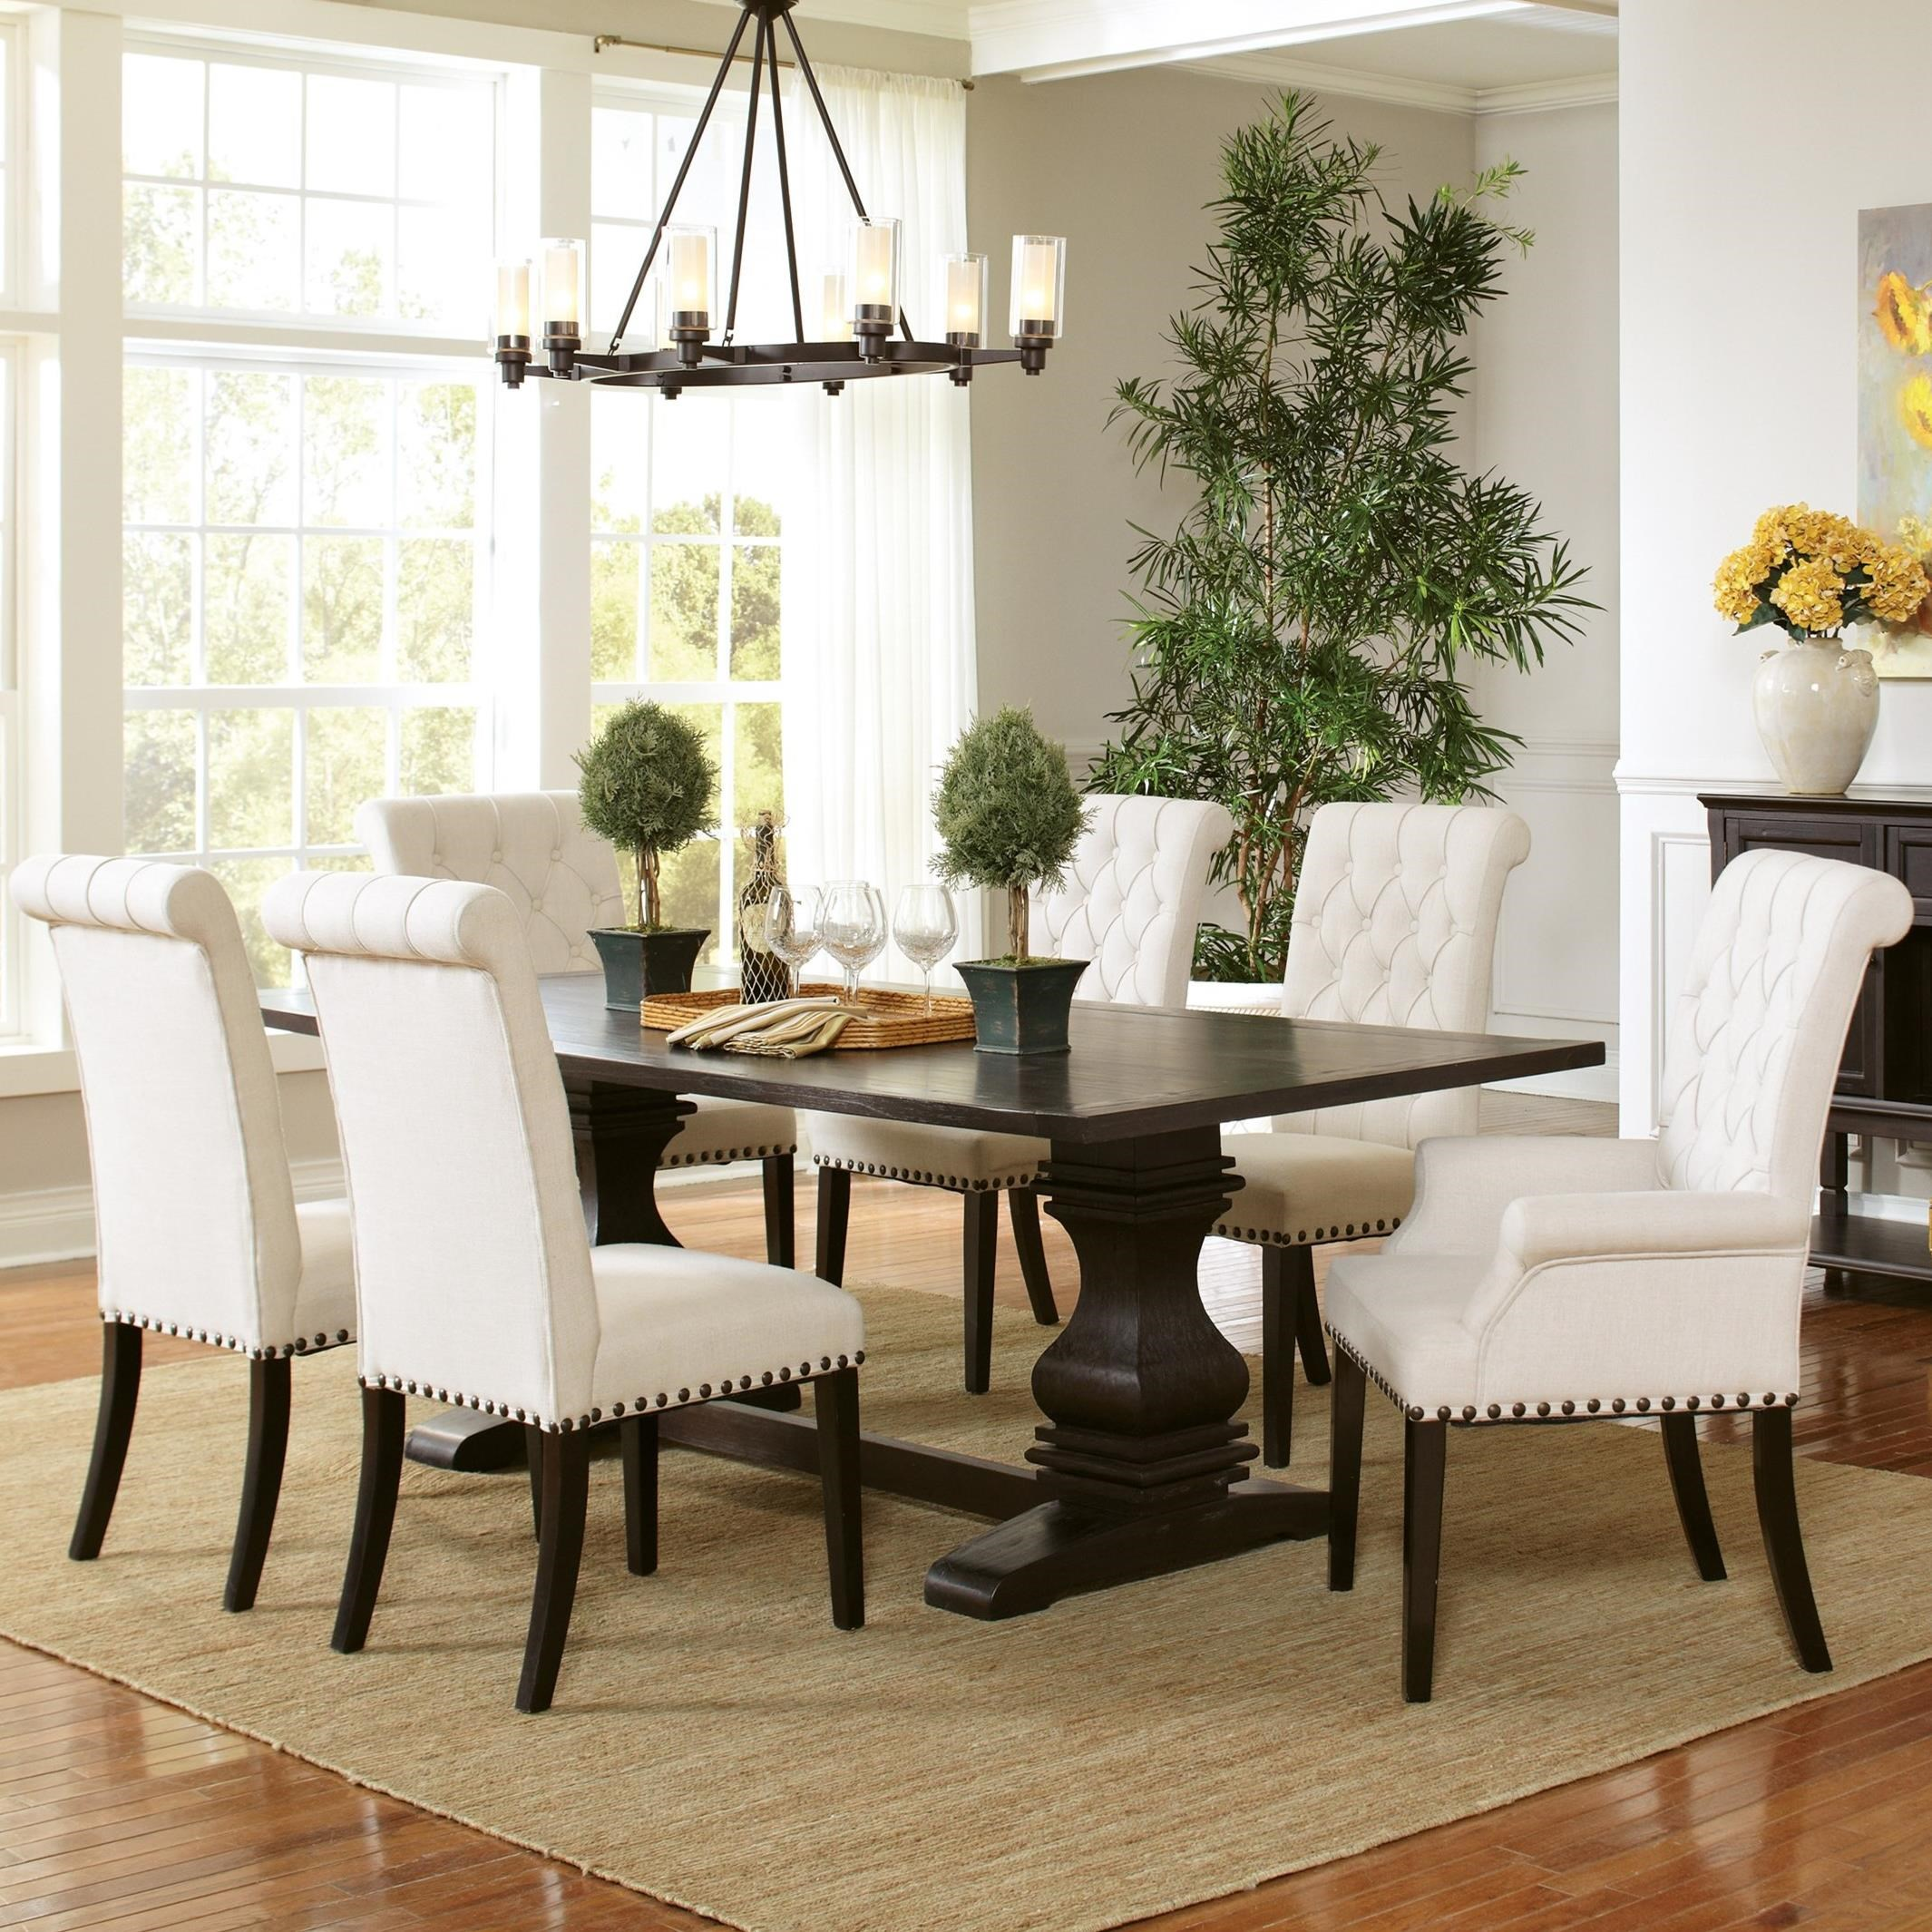 Parkins Table and Chair Set by Coaster at Northeast Factory Direct